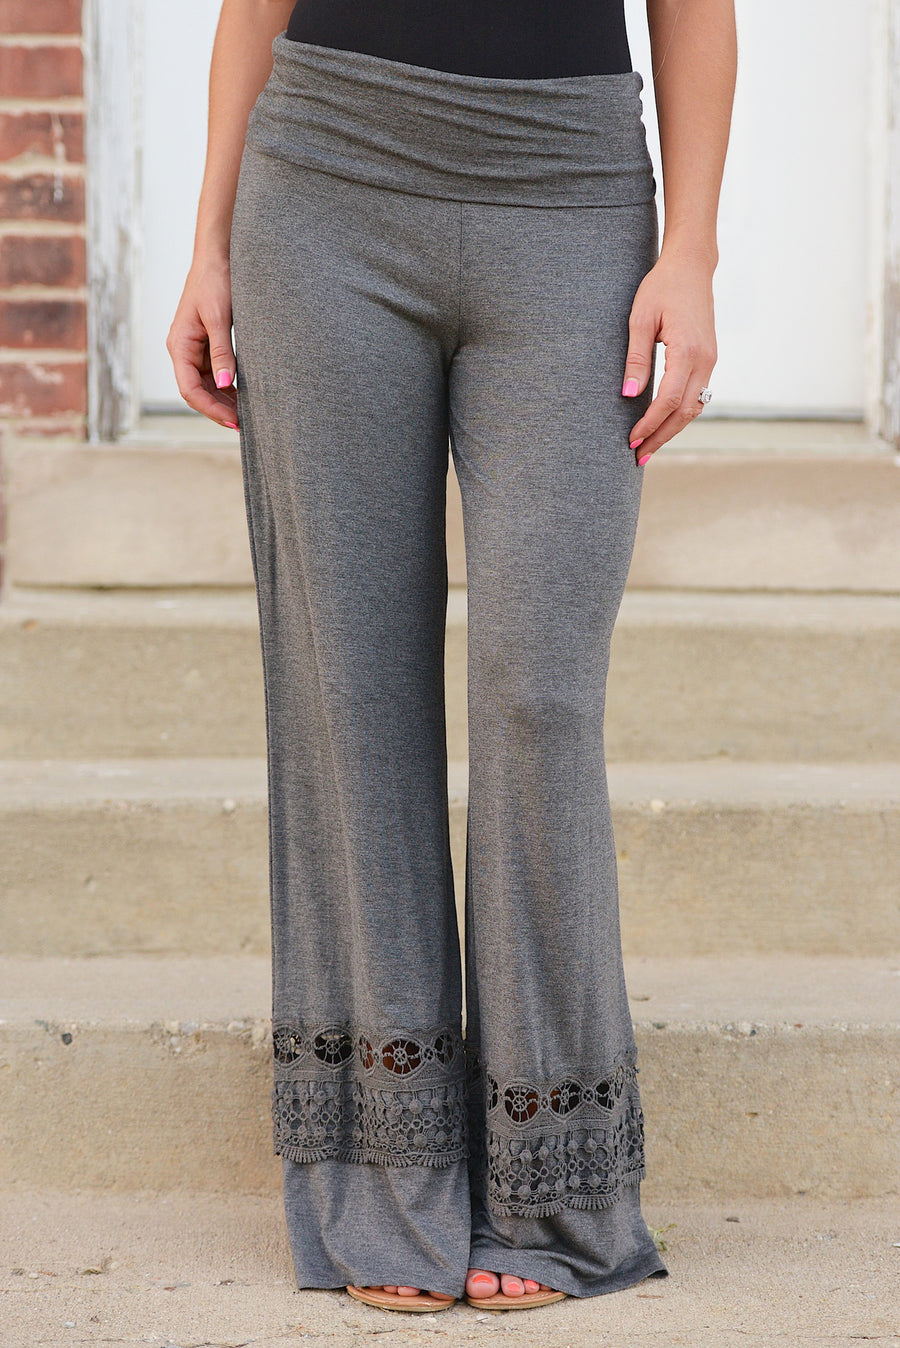 A Whole New World Palazzo Pants - crochet palazzo lounge pants, Closet Candy Boutique